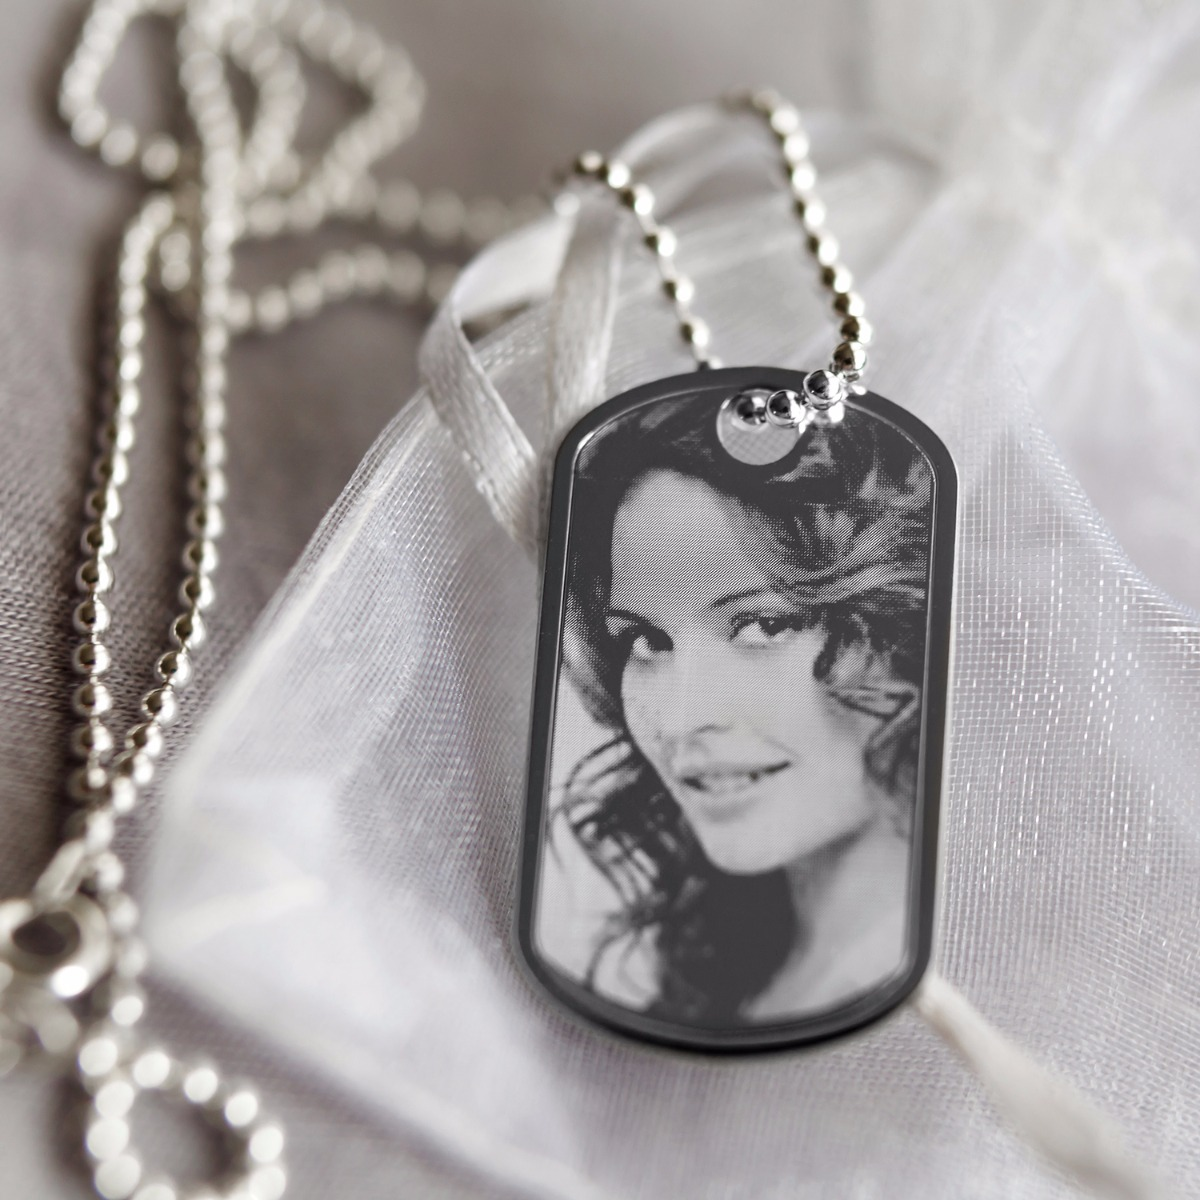 personalized ip photo com lockets pendant style dog tag walmart